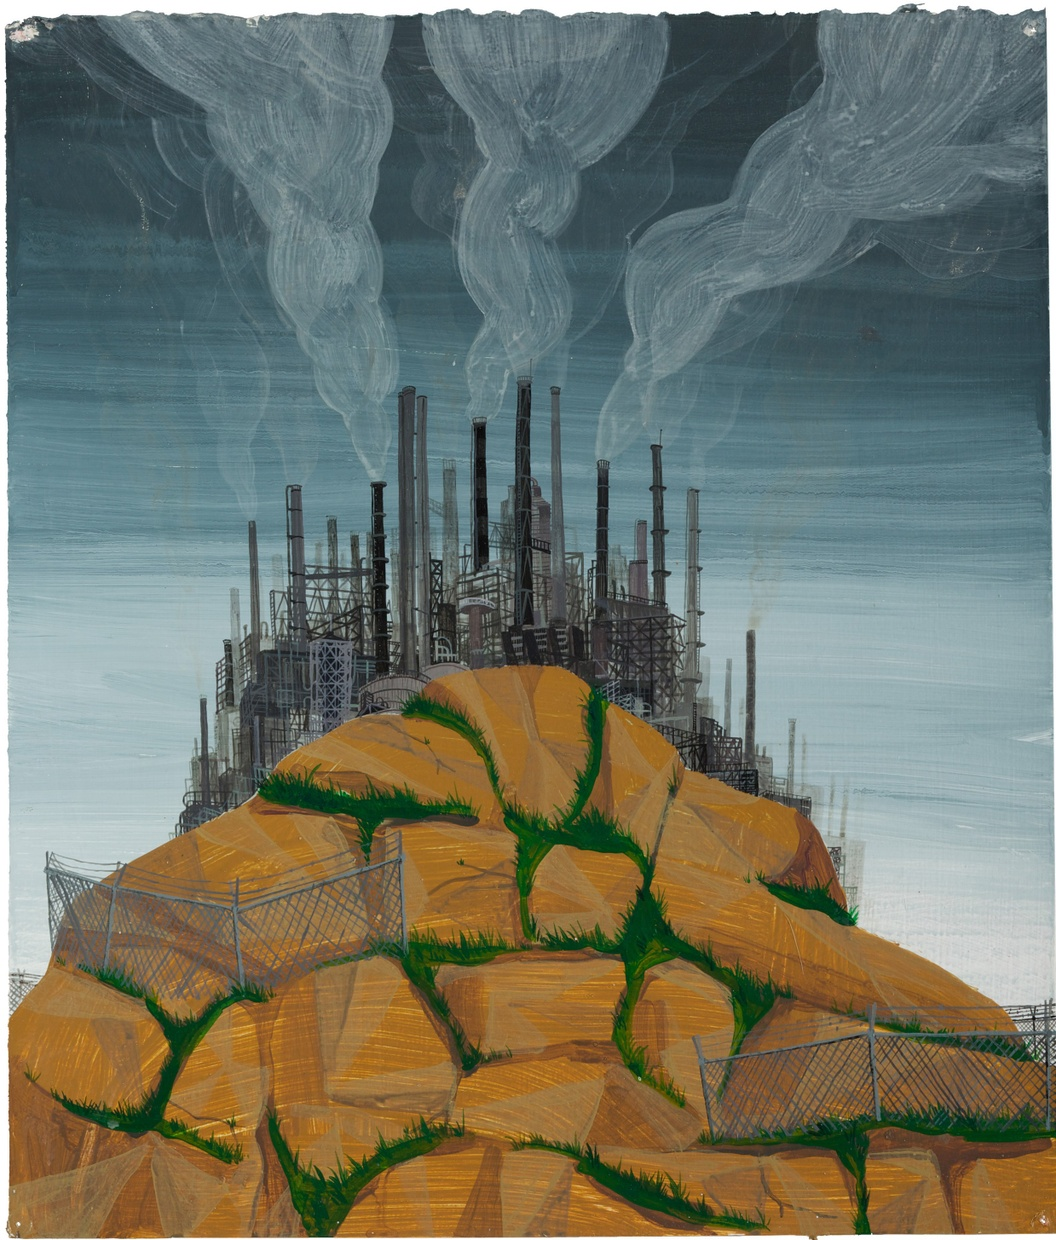 A painting of a large rock hill with brown rocks separated by green grass with a crowded mass of factory pipes and chimneys releasing clouds of smoke at the distant top of the rock hill.